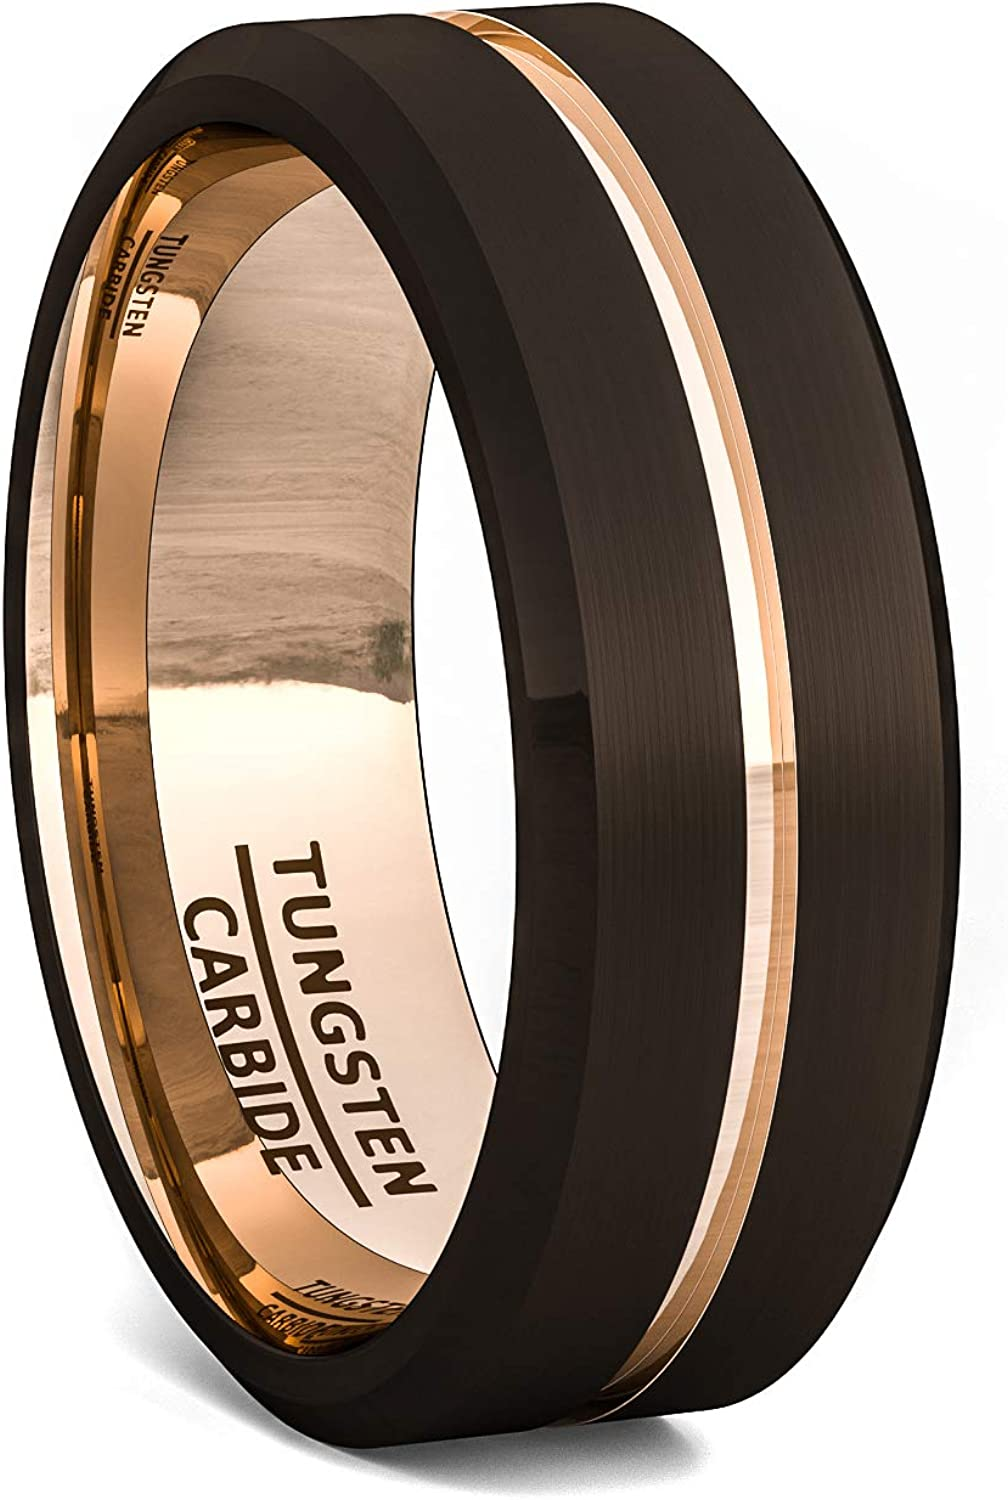 Pipe Cut Brush Finished Mens Tungsten Wedding Band Rose Gold Plated Groove 8mm